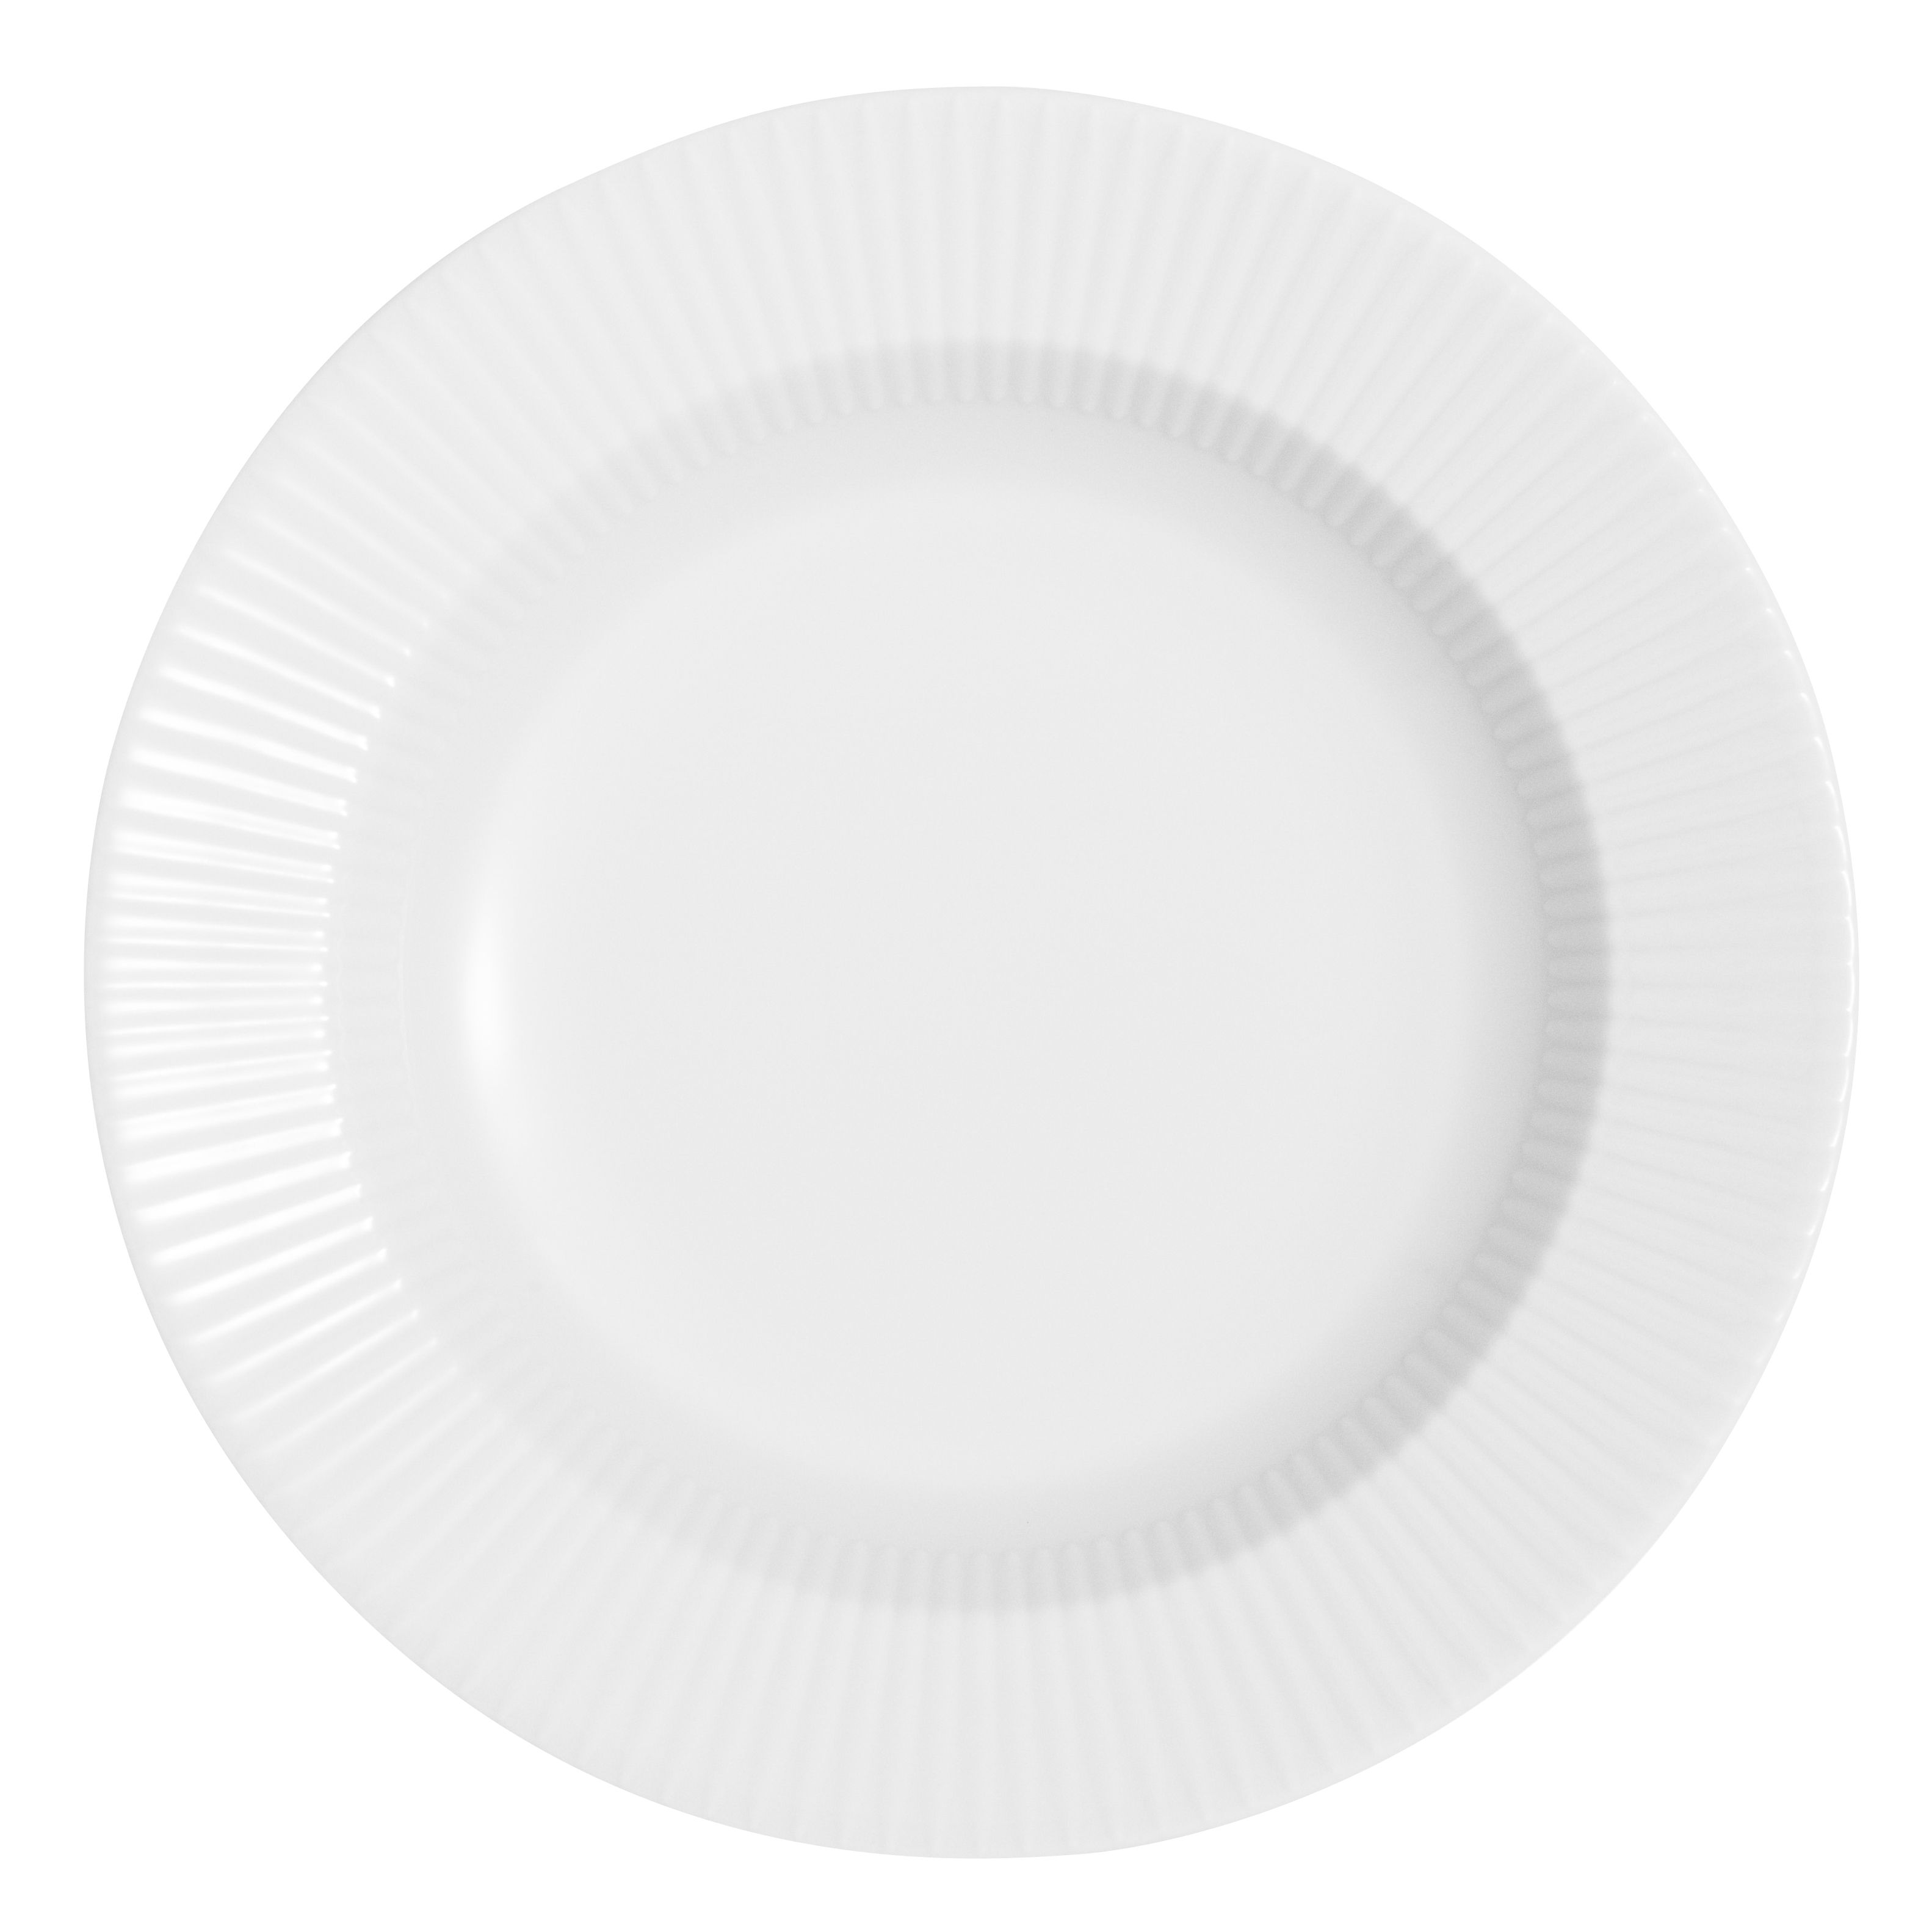 Tableware - Plates - Legio Nova Soup plate - Ø 25 cm by Eva Trio - White - China